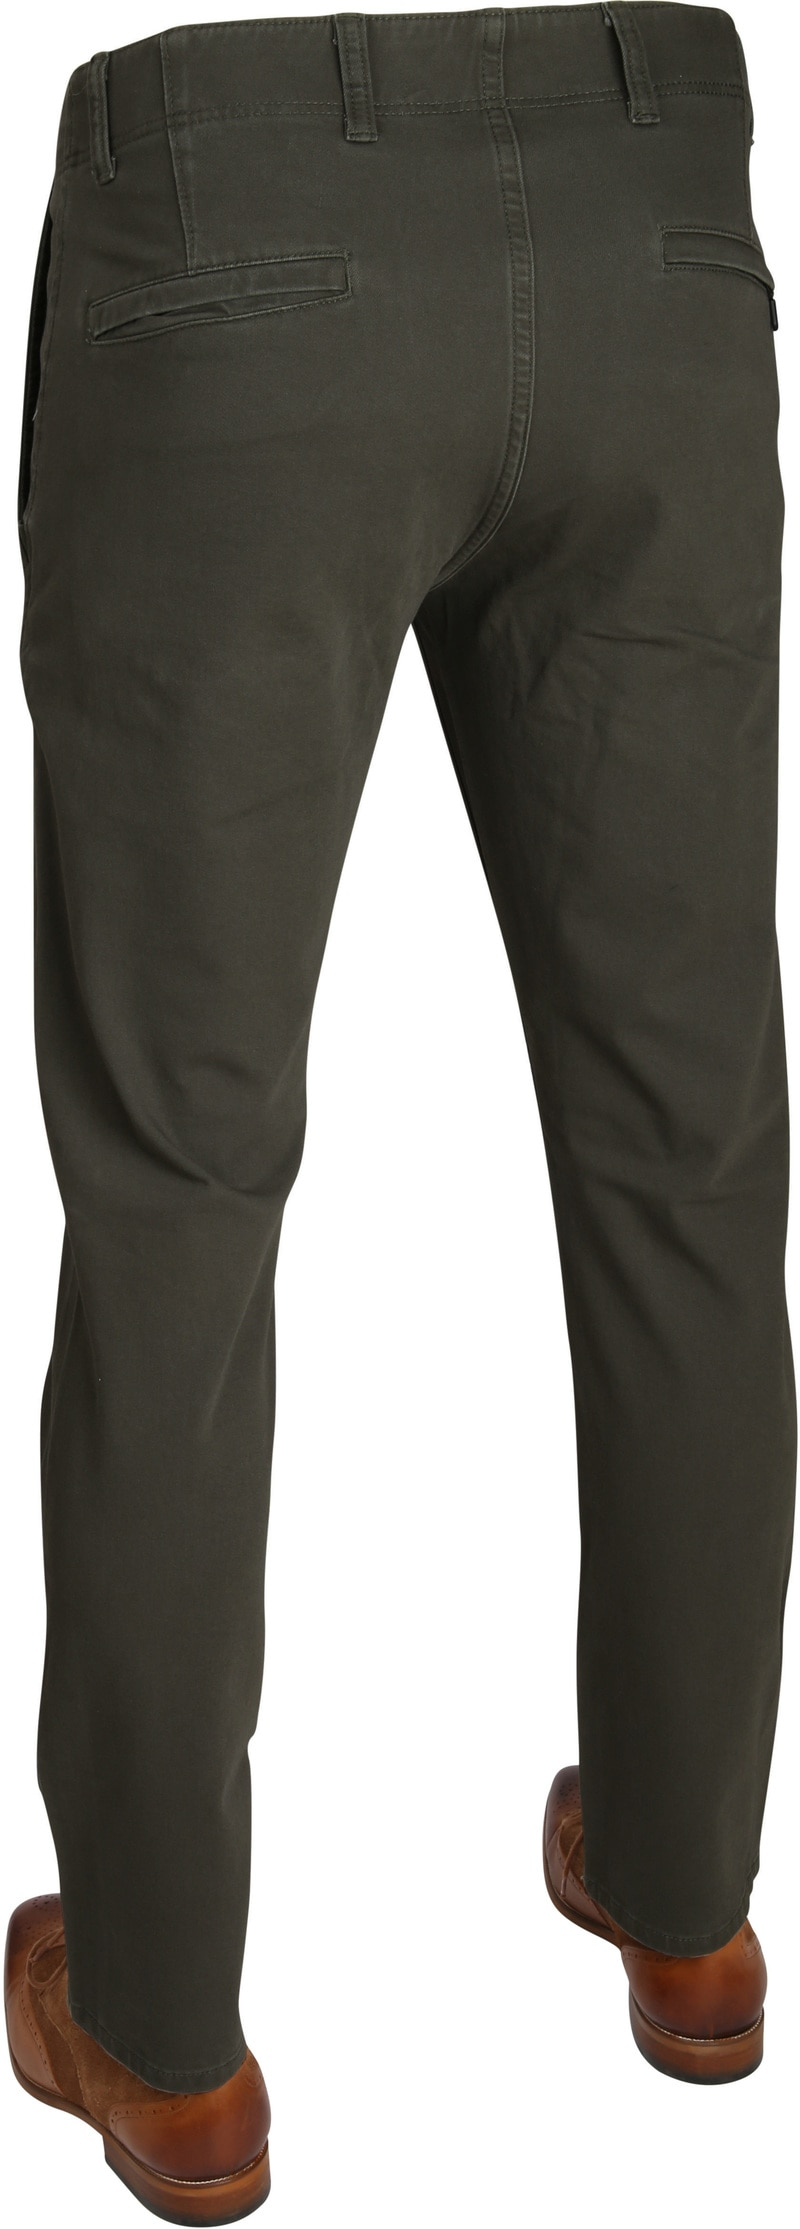 Dockers Alpha Chino Skinny Dark Green Foto 2